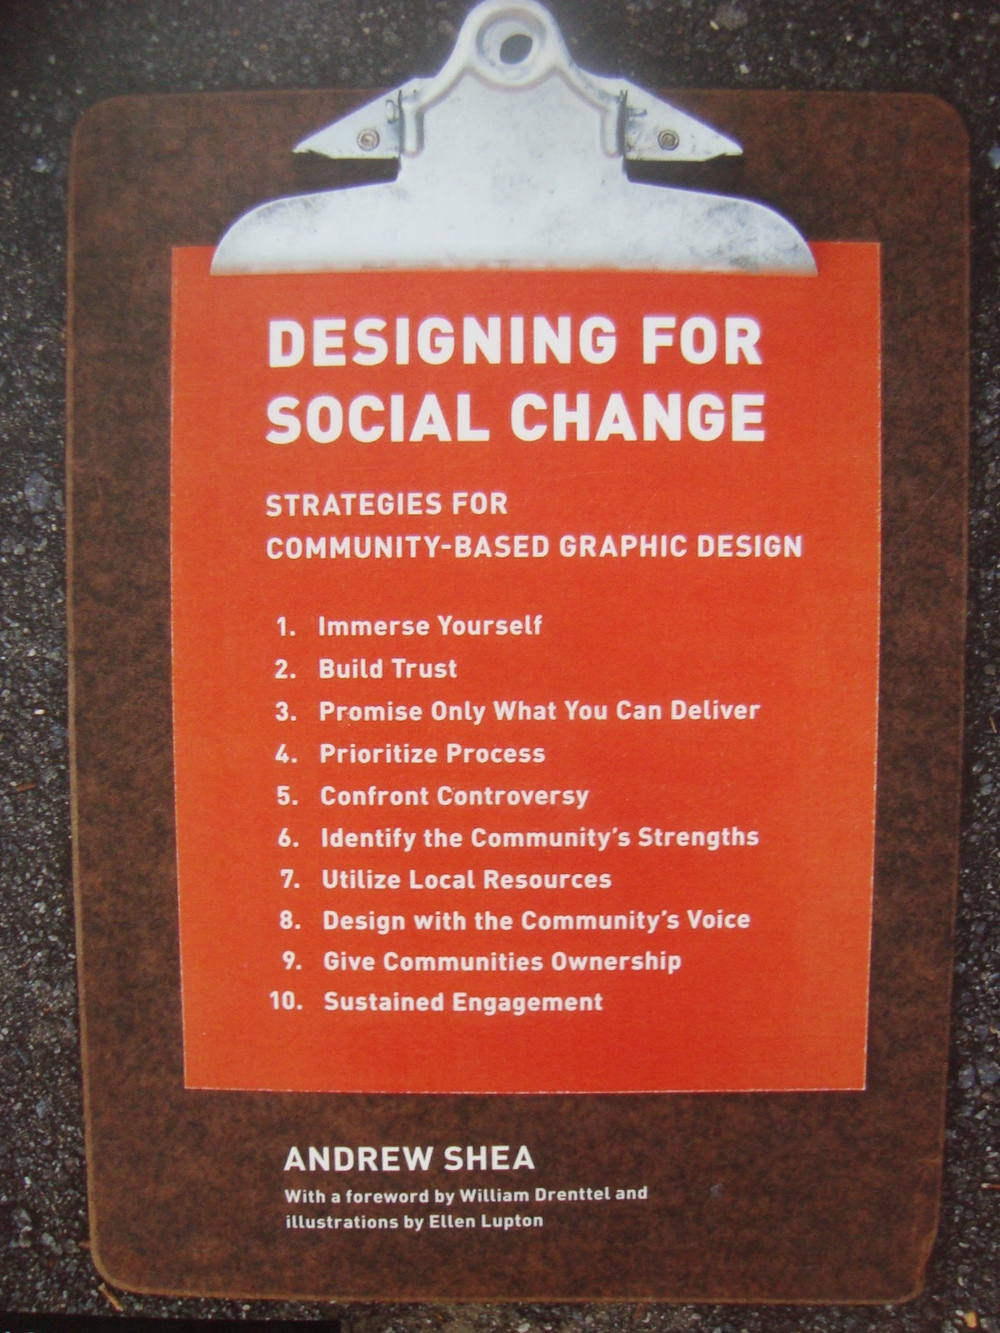 designing-for-social-change_strategies-cover.jpg